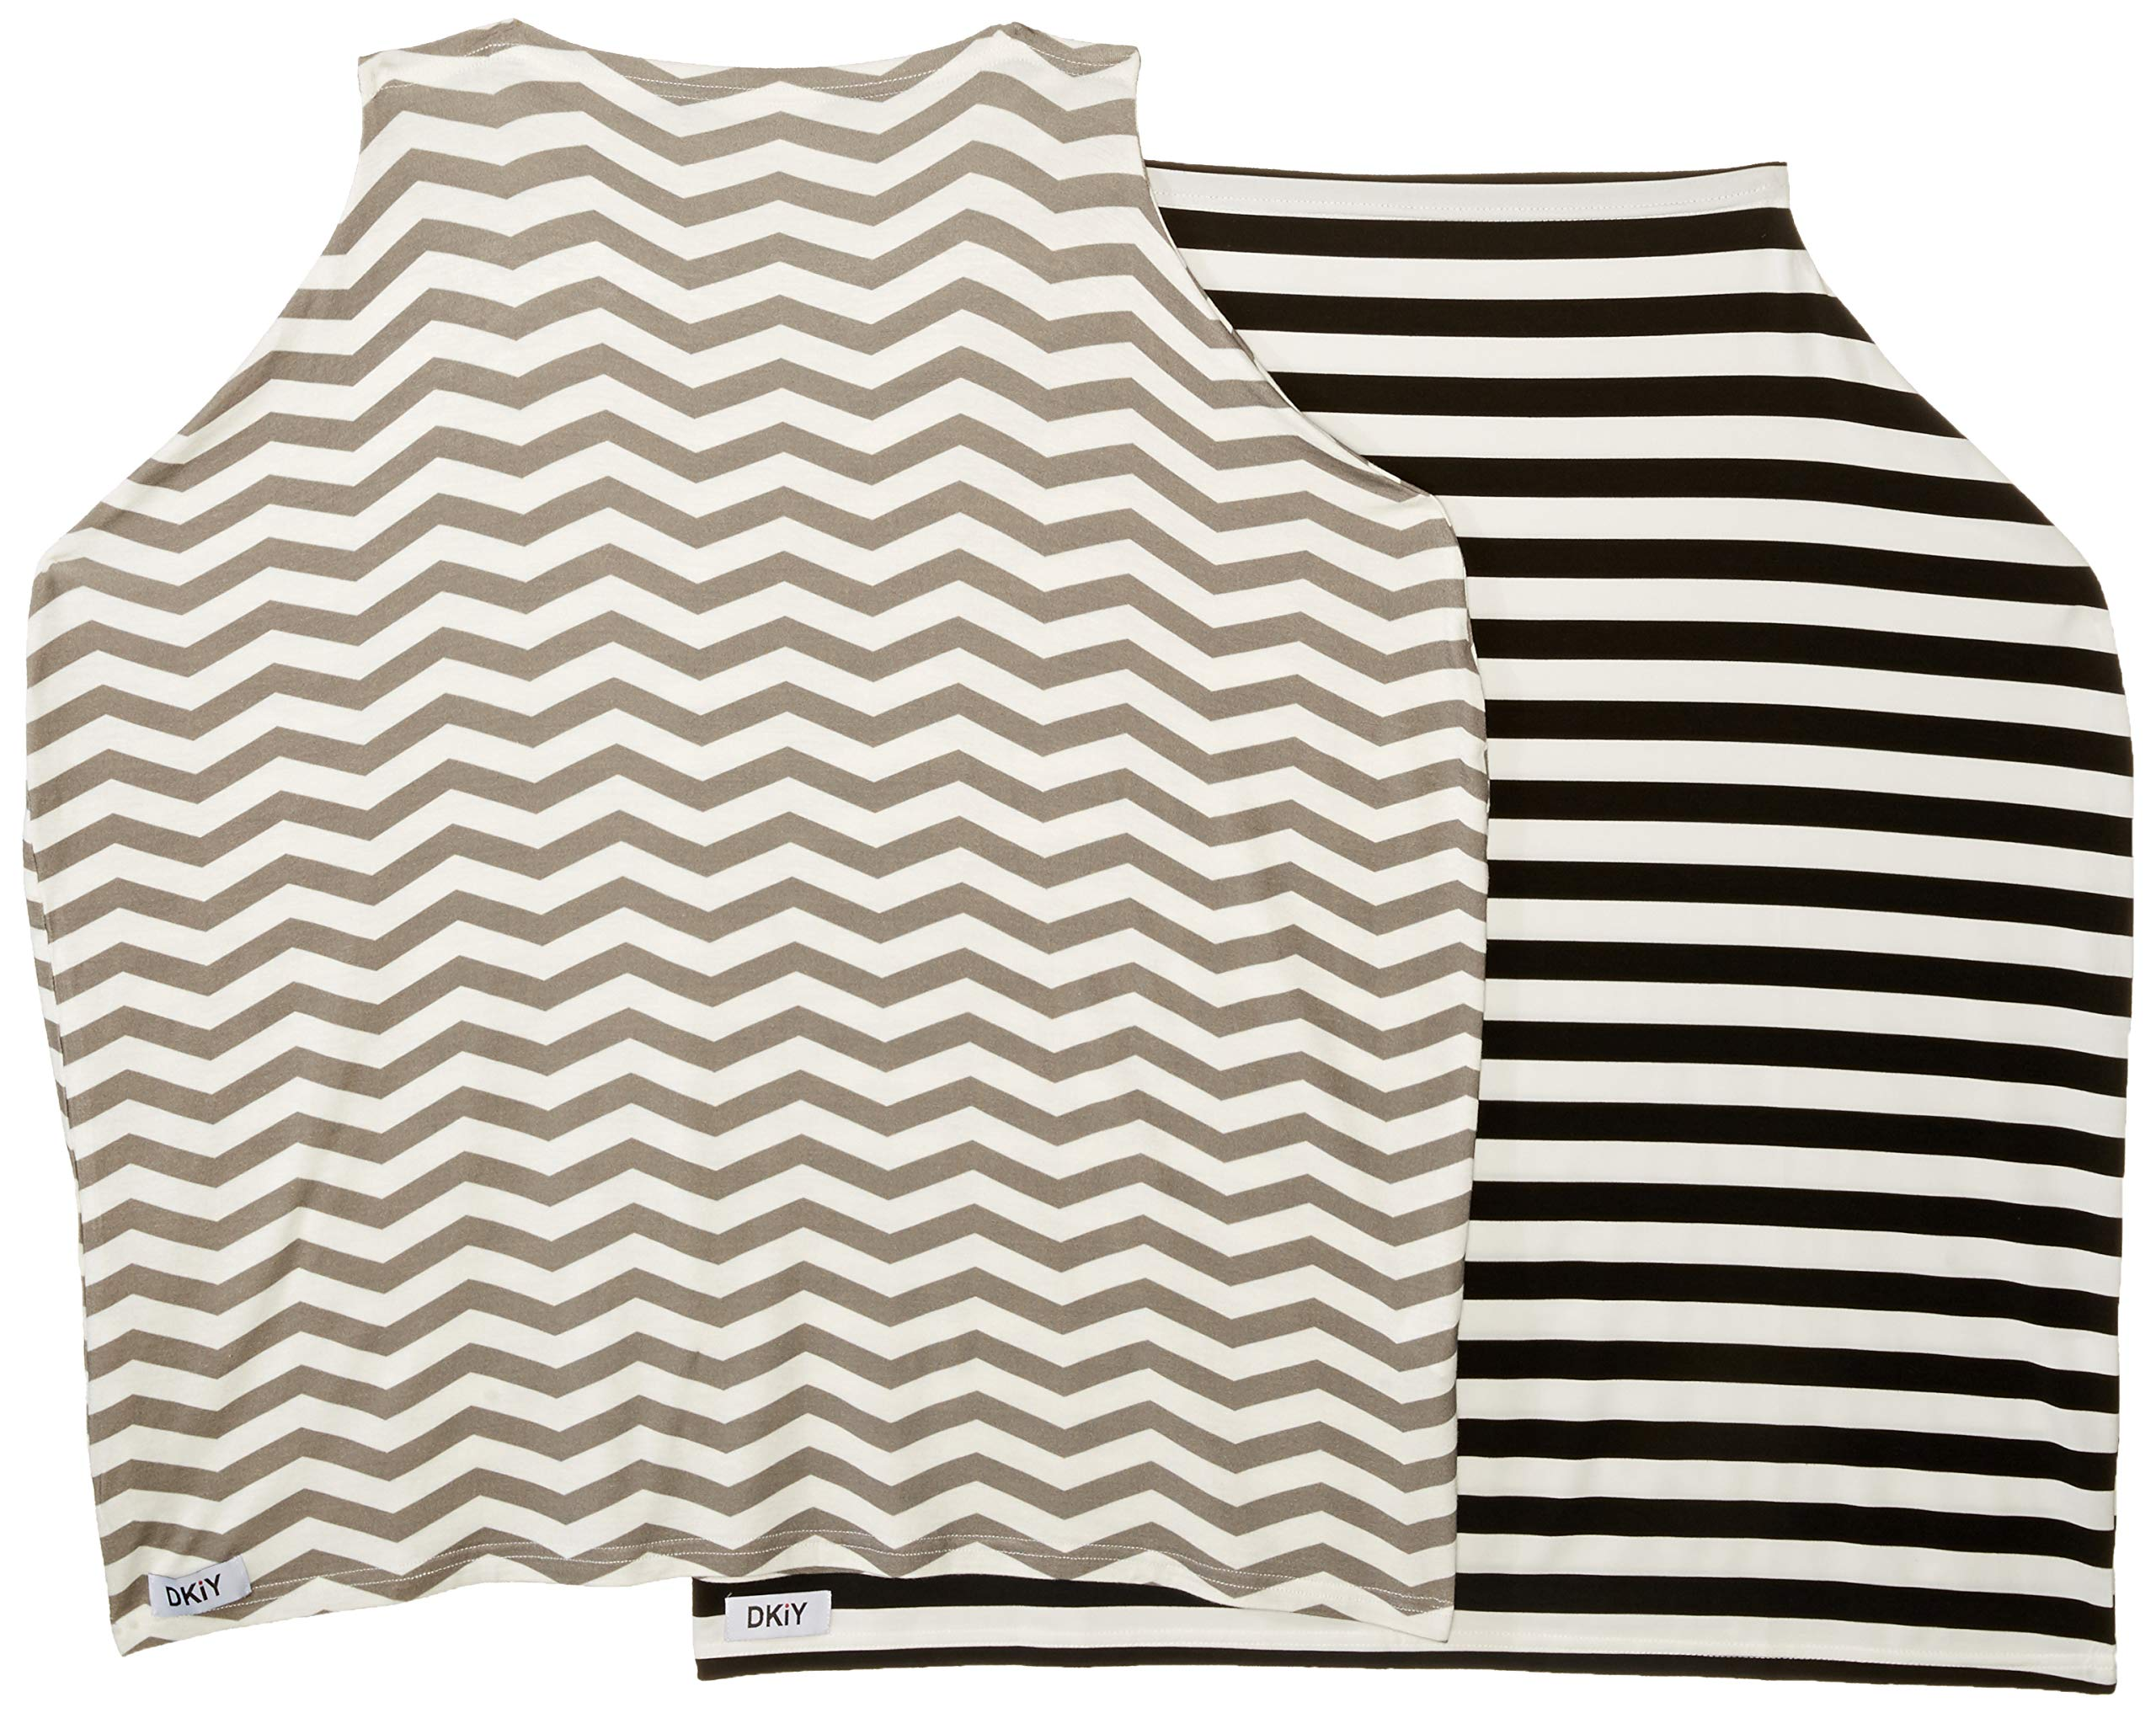 Nursing Cover -Pack of 2- for Privacy During Breastfeeding, Baby Car Seat and Stroller Cover Includes 1 Black & White Stripes Plus 1 Gray & White Chevron Design